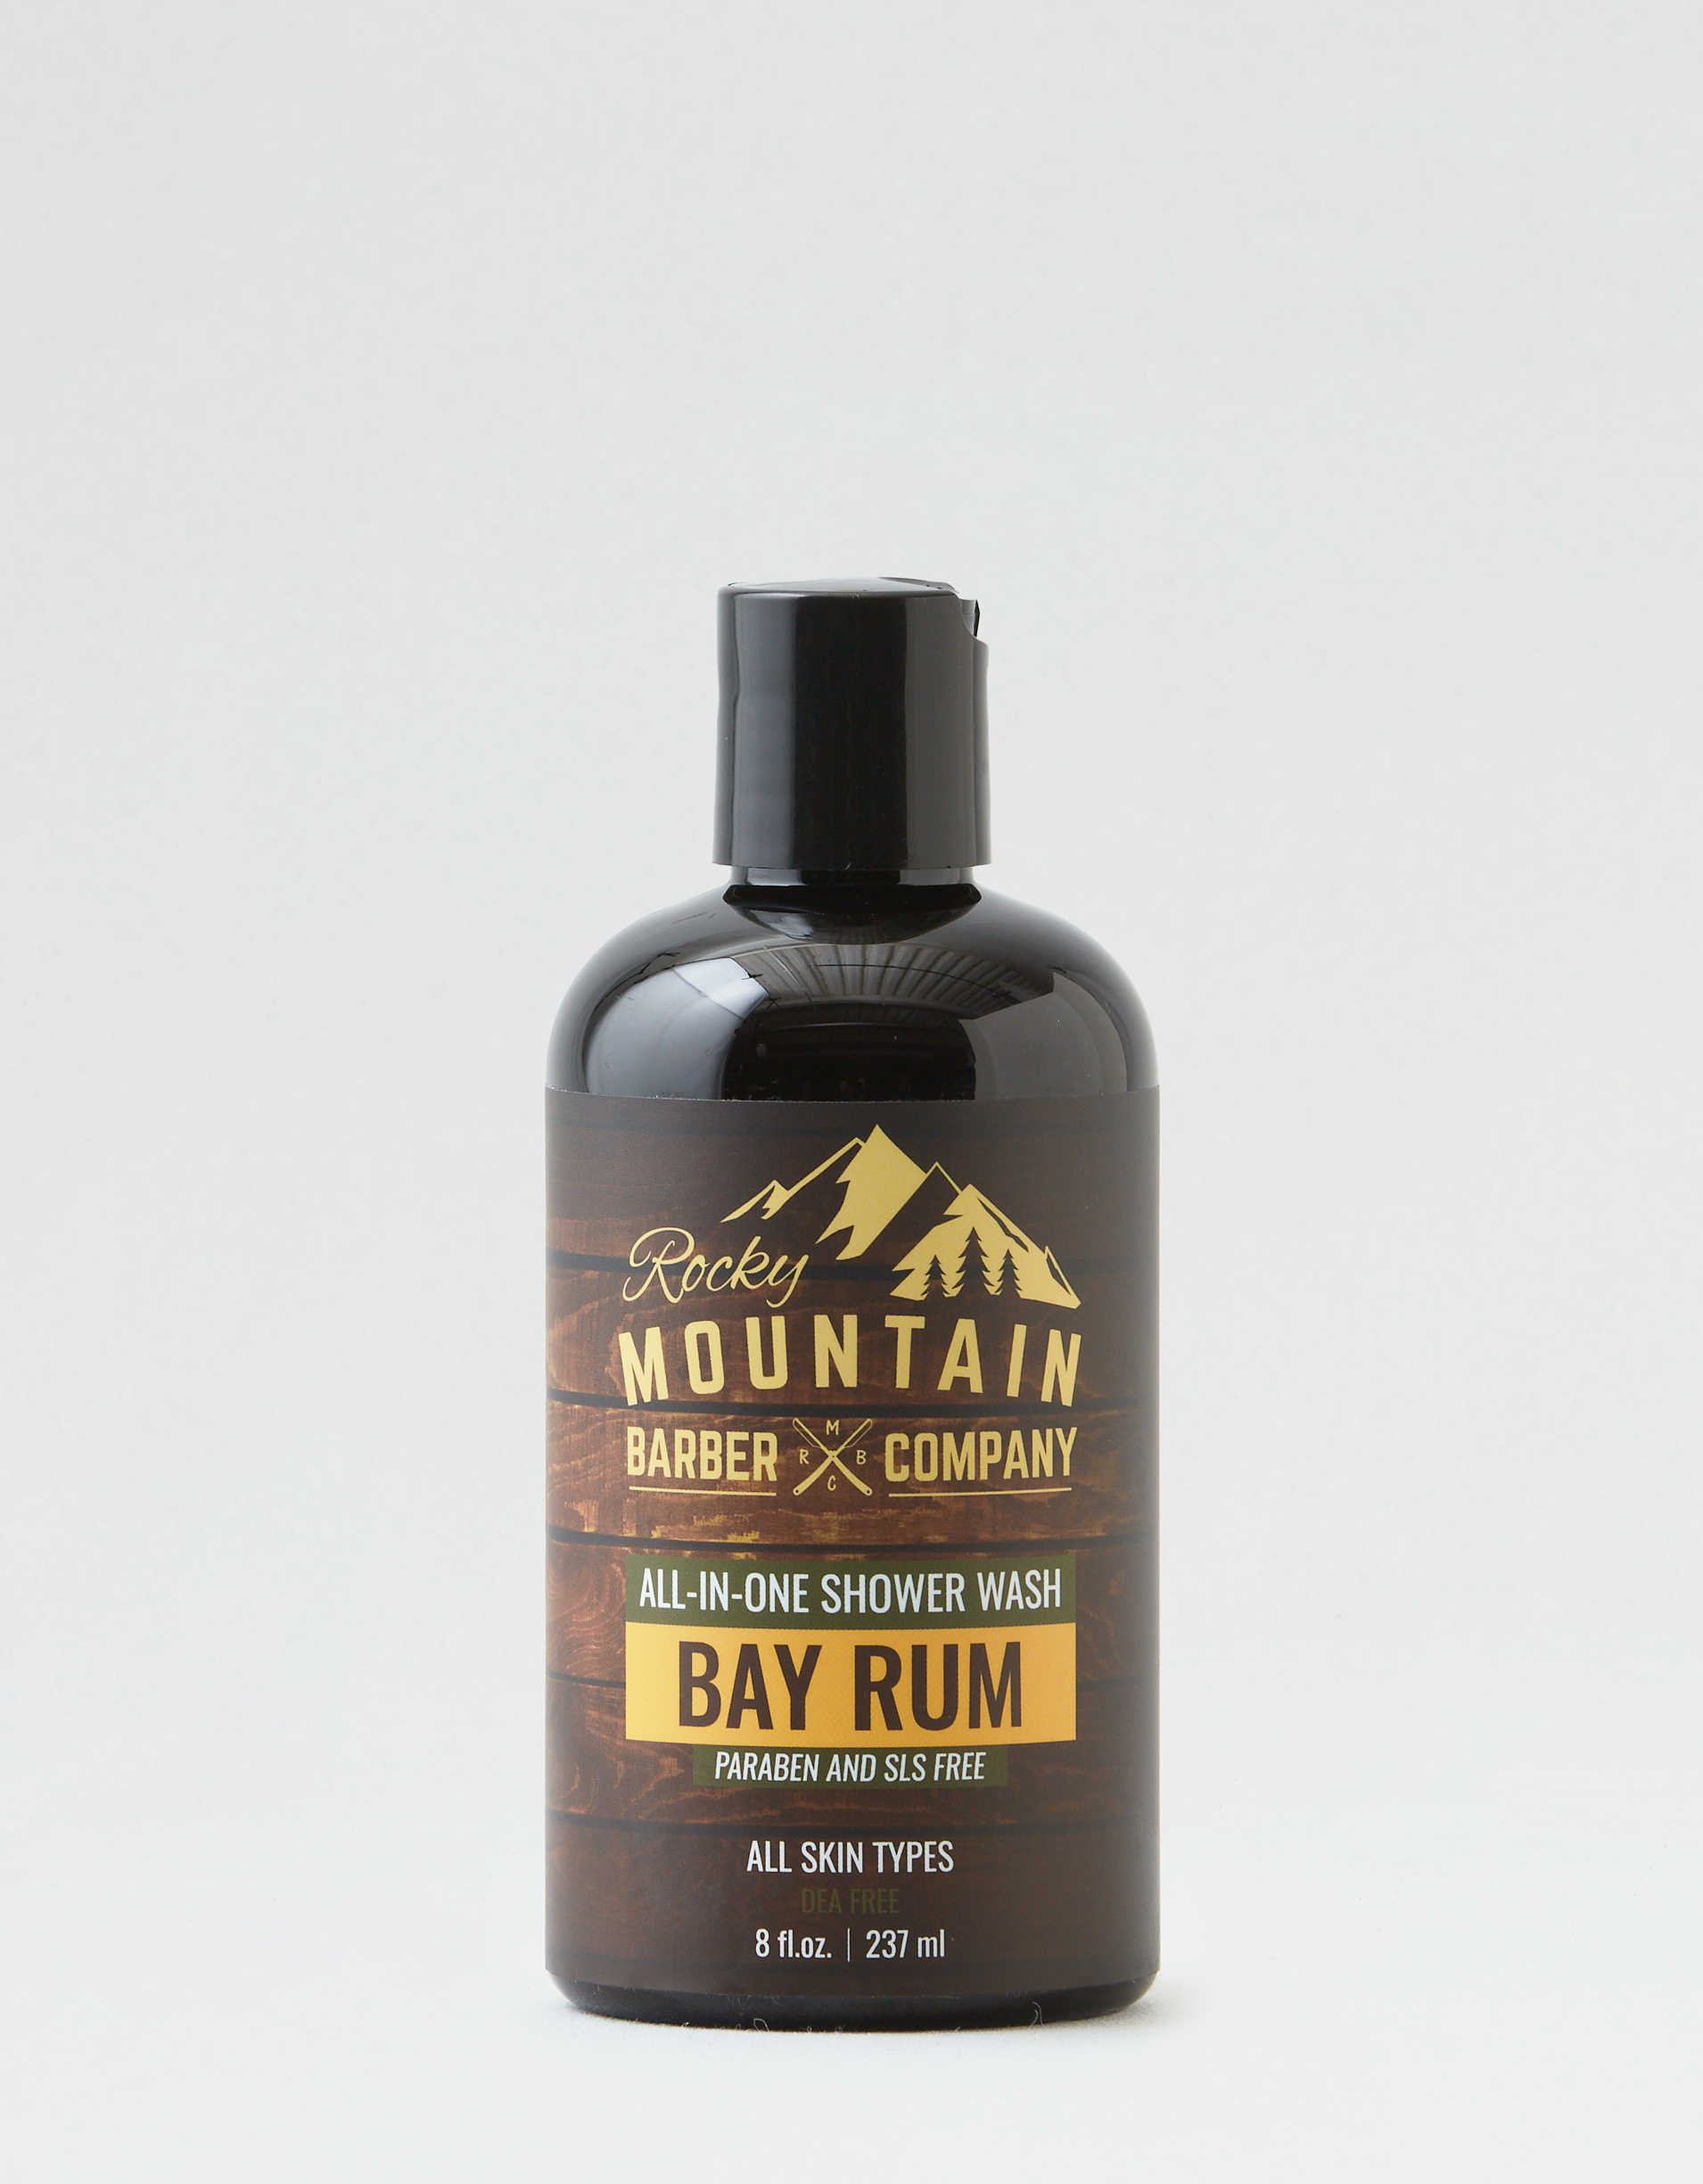 Rocky Mountain Barber Company All-In-One Shower Wash